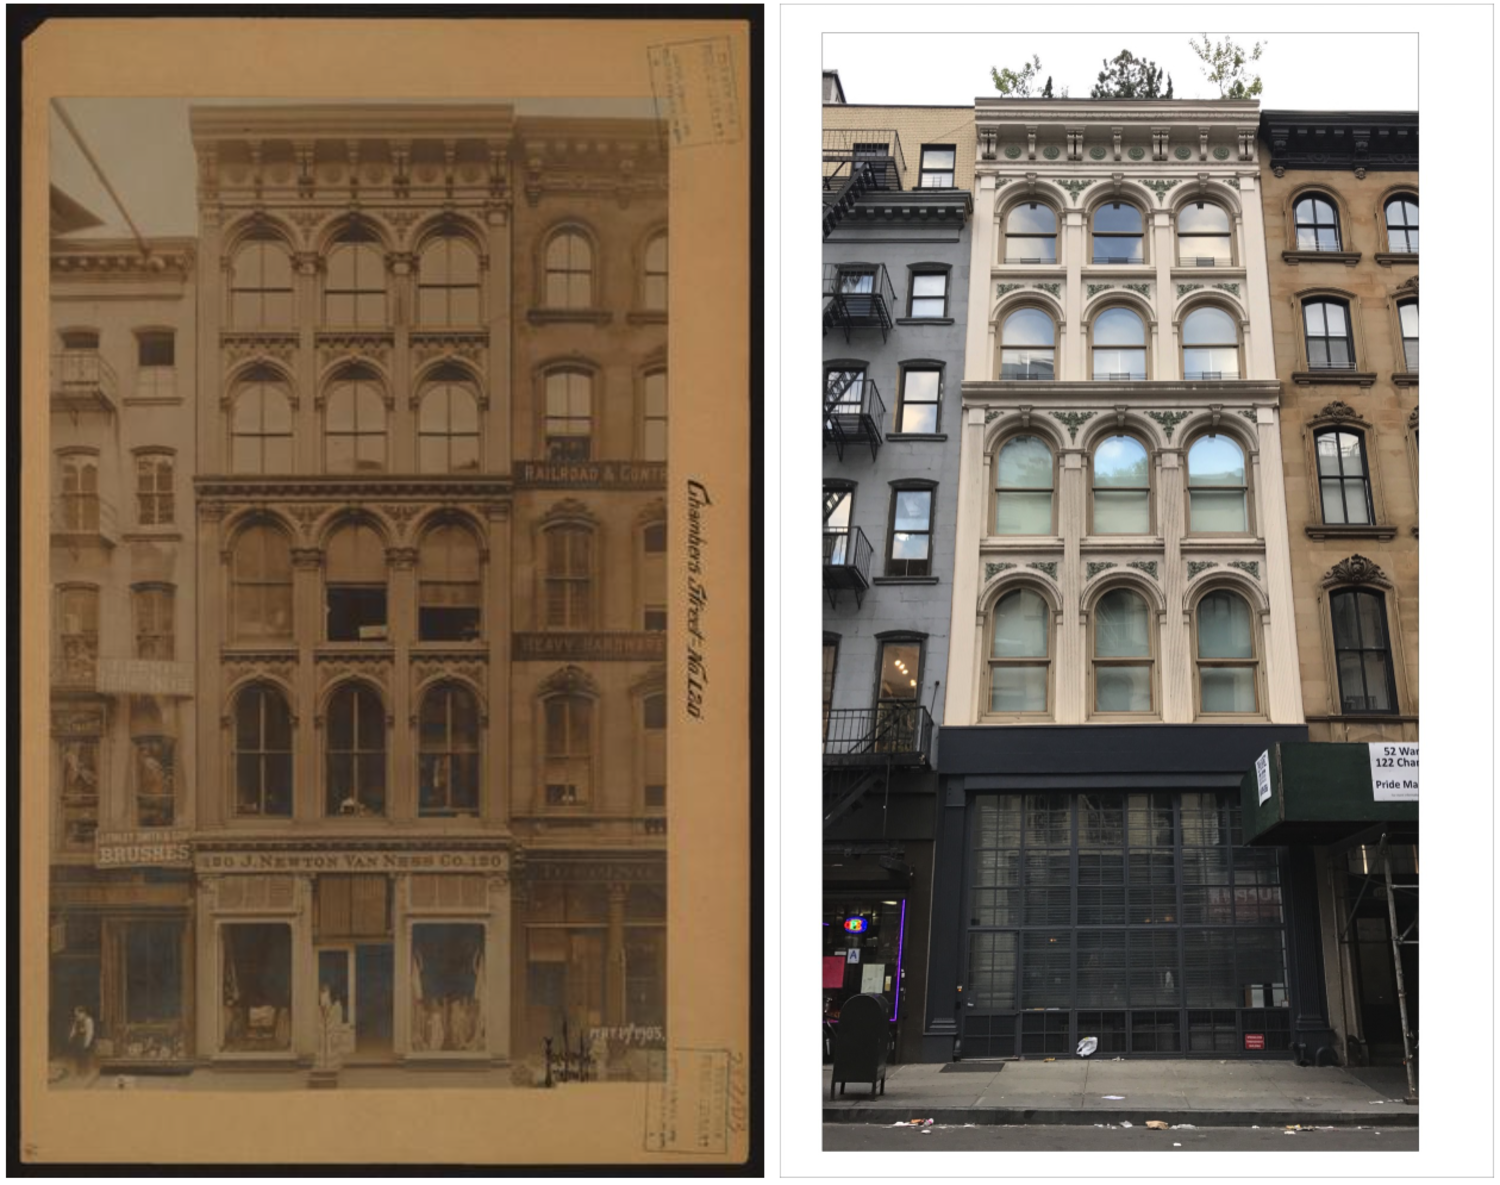 120 Chambers street (Photographer unknown, 1905). May 19, 1905 // July 4, 2017